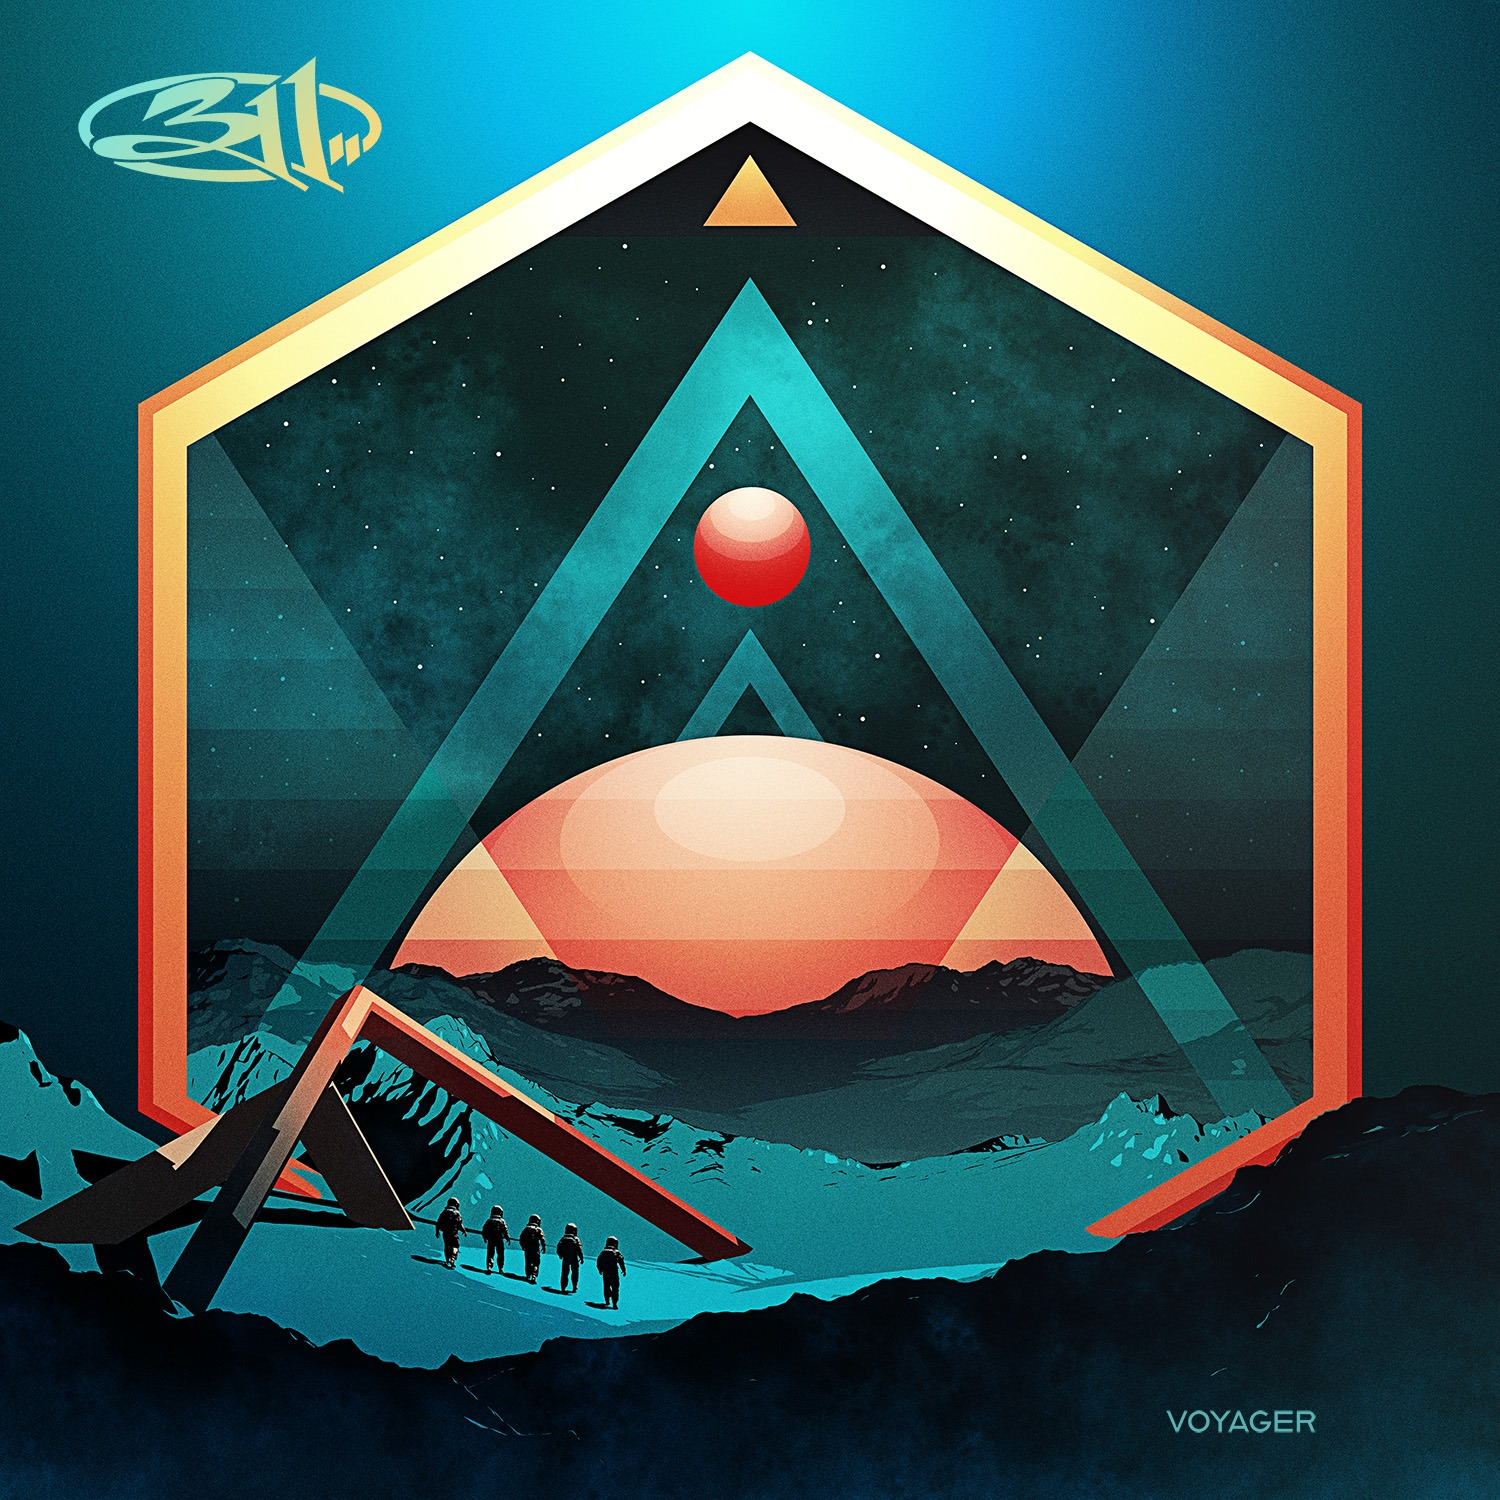 3 Weeks Till Release of New 311 Album VOYAGER